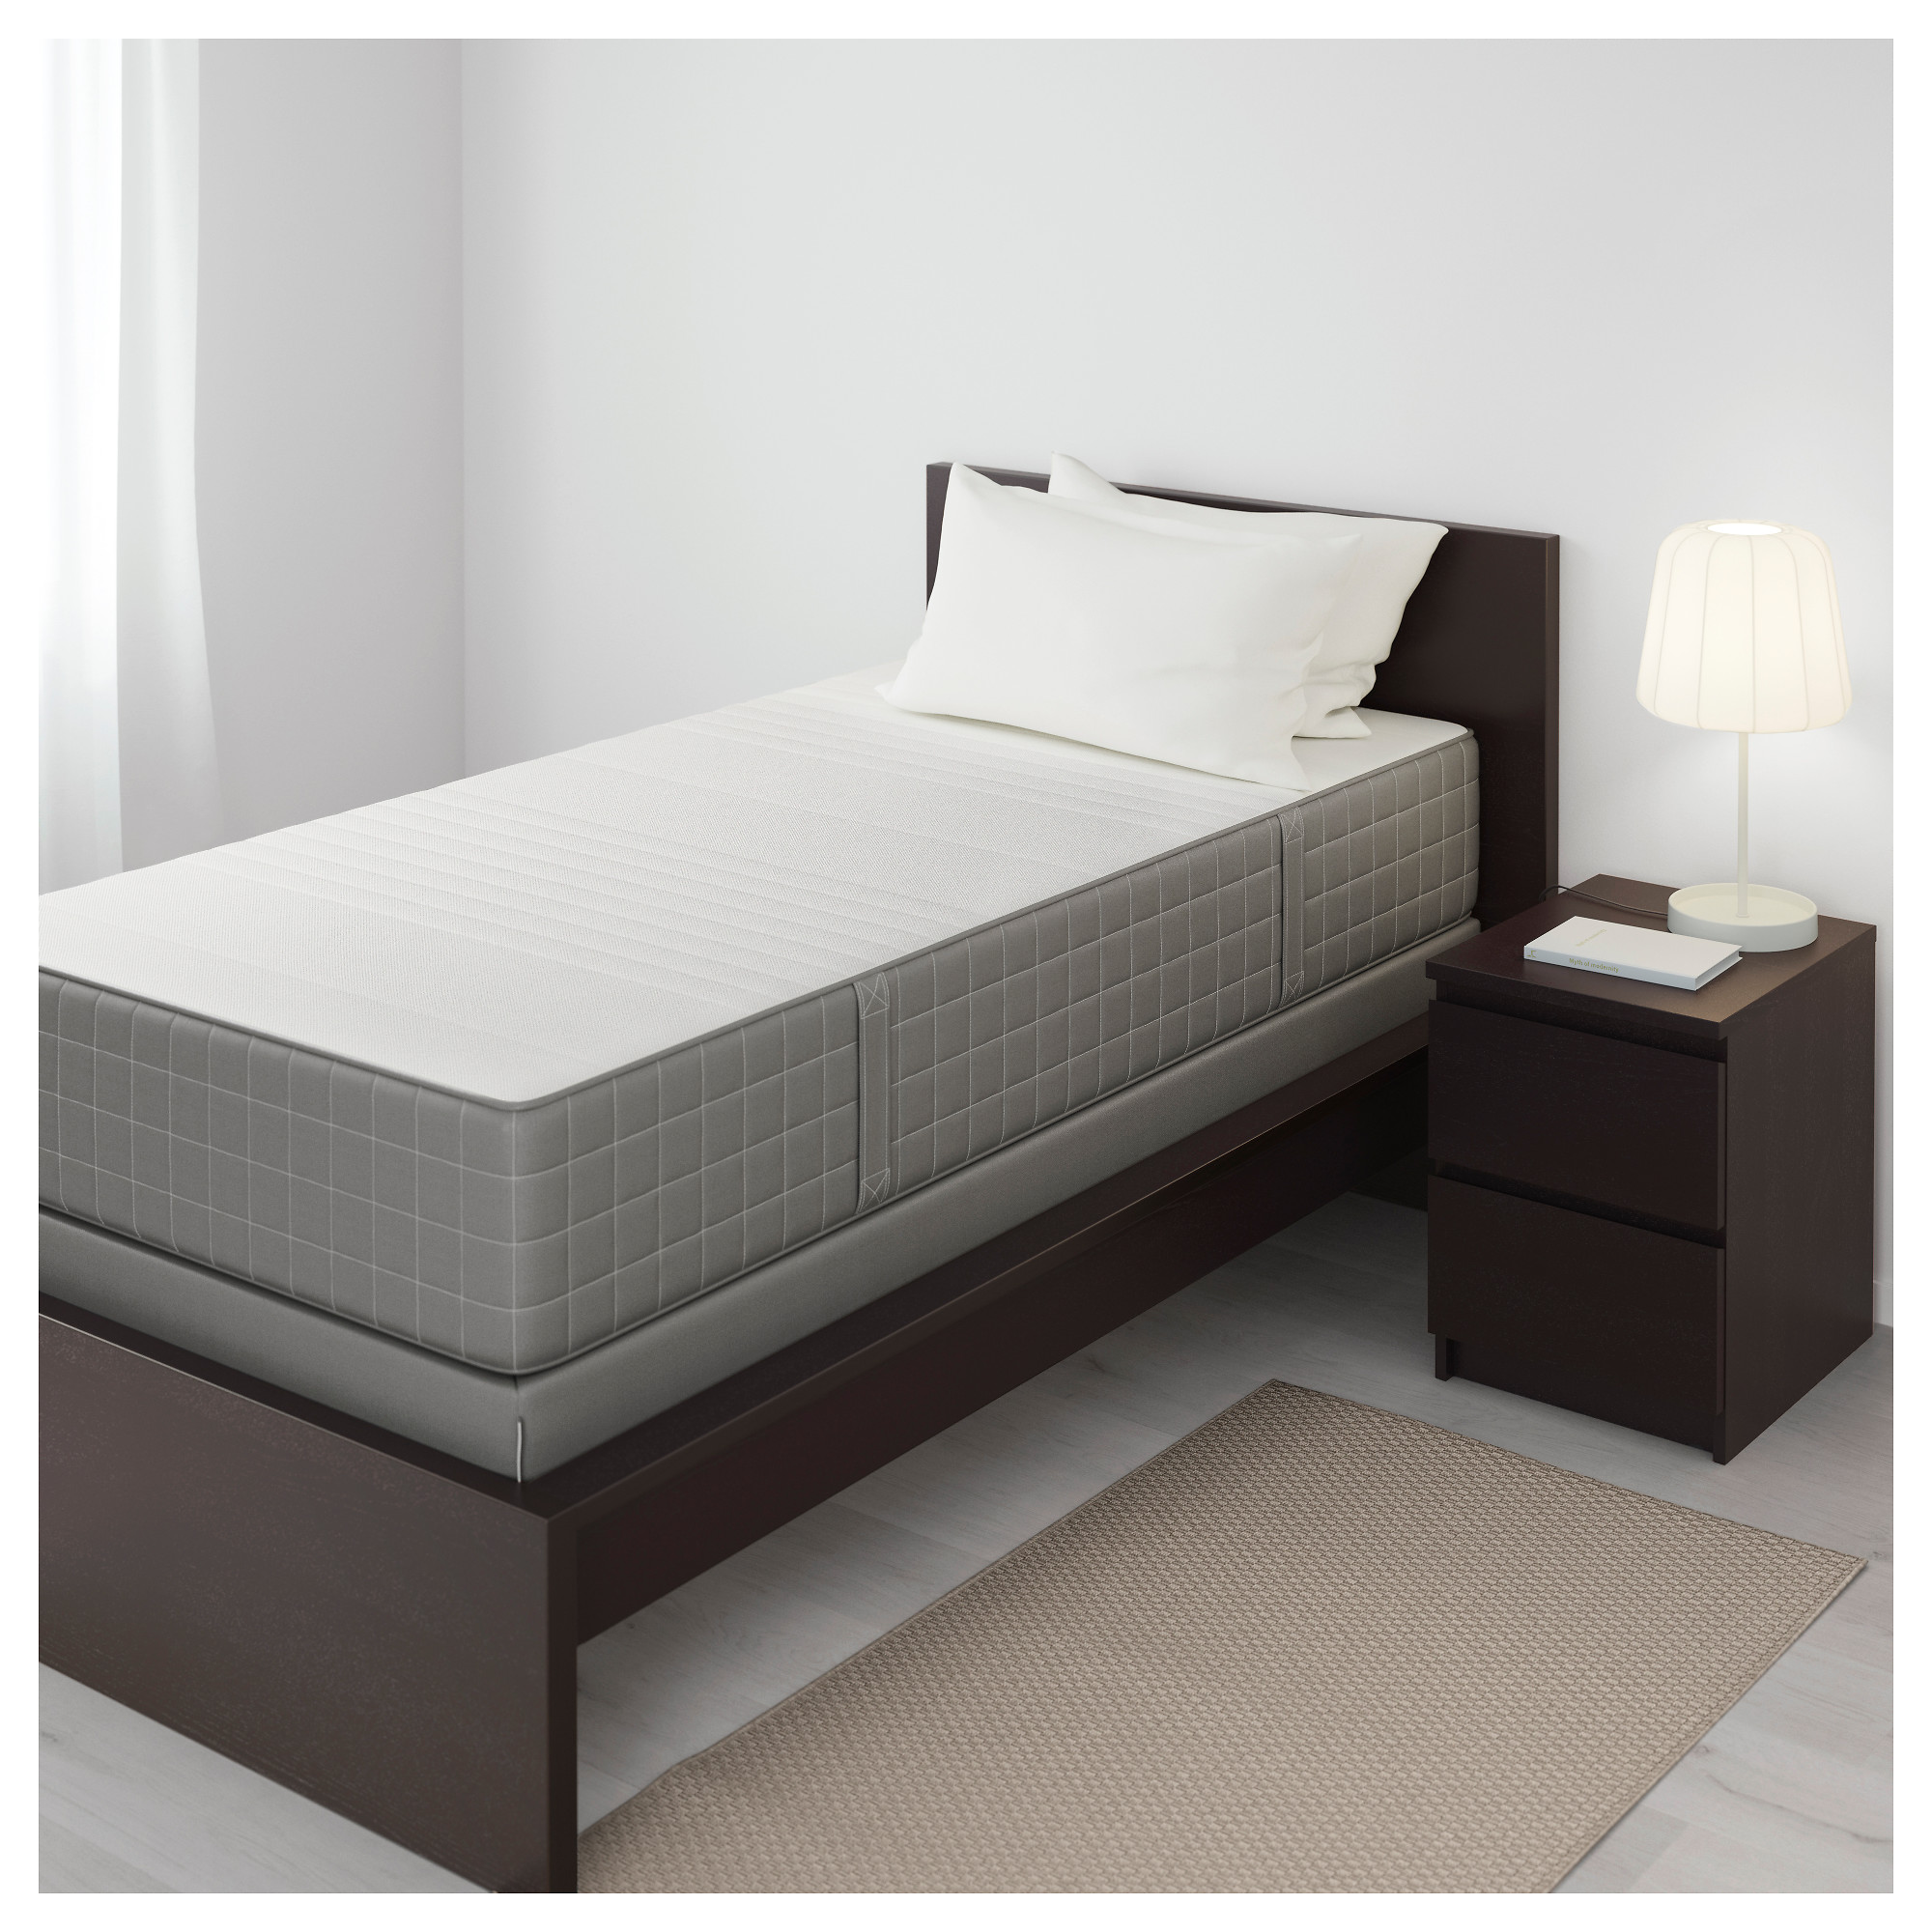 in box signature best for heavy rated mattress foam mattresses person customer with reviews memoir helpful certified queen sleep certipur memory pcr inch us springs